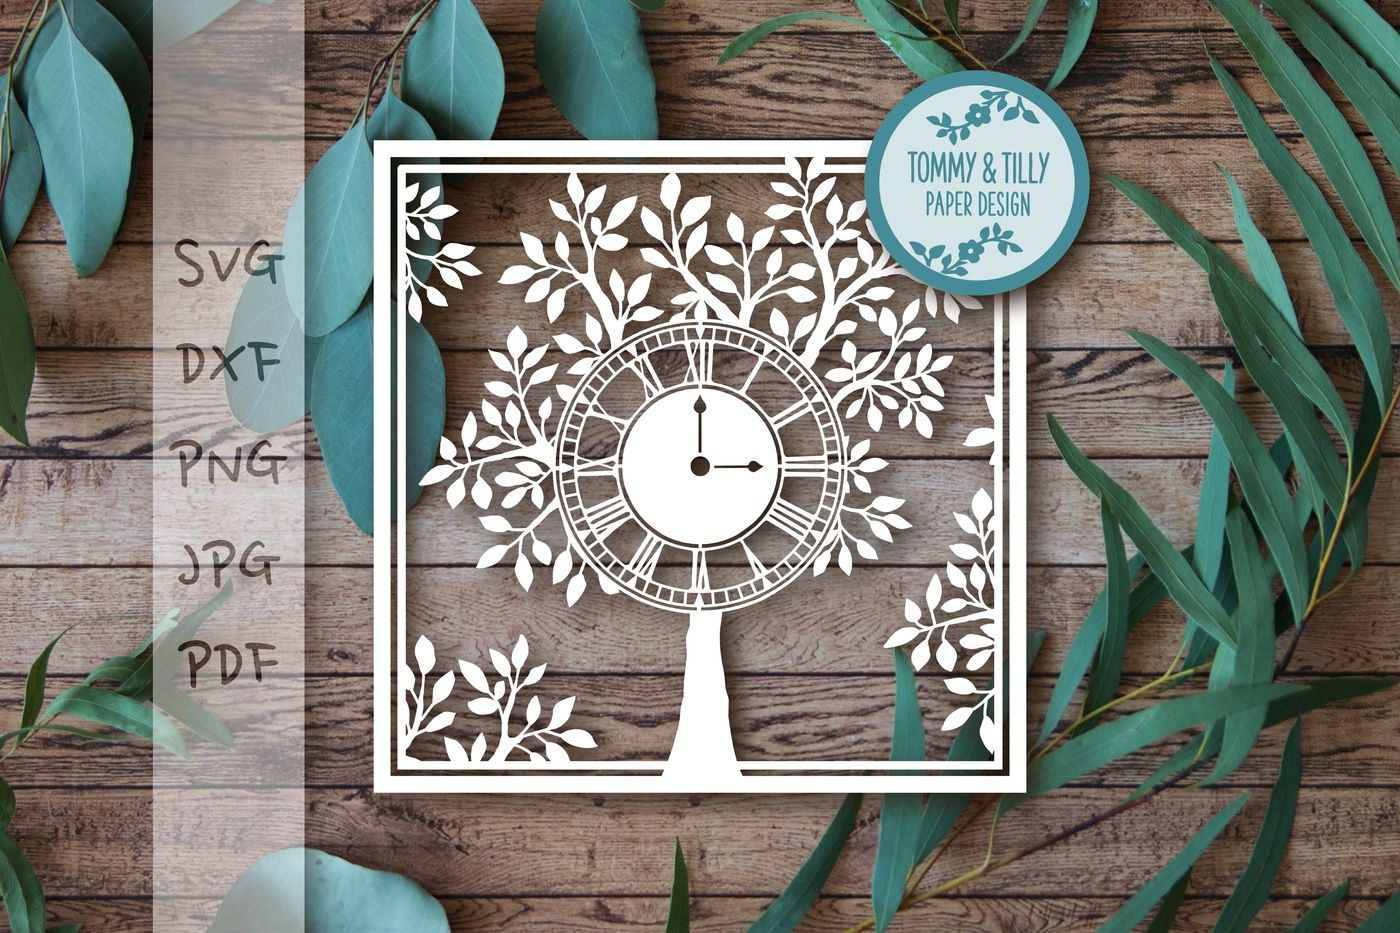 Square Tree Clock - SVG DXF PNG PDF JPG By Tommy and Tilly